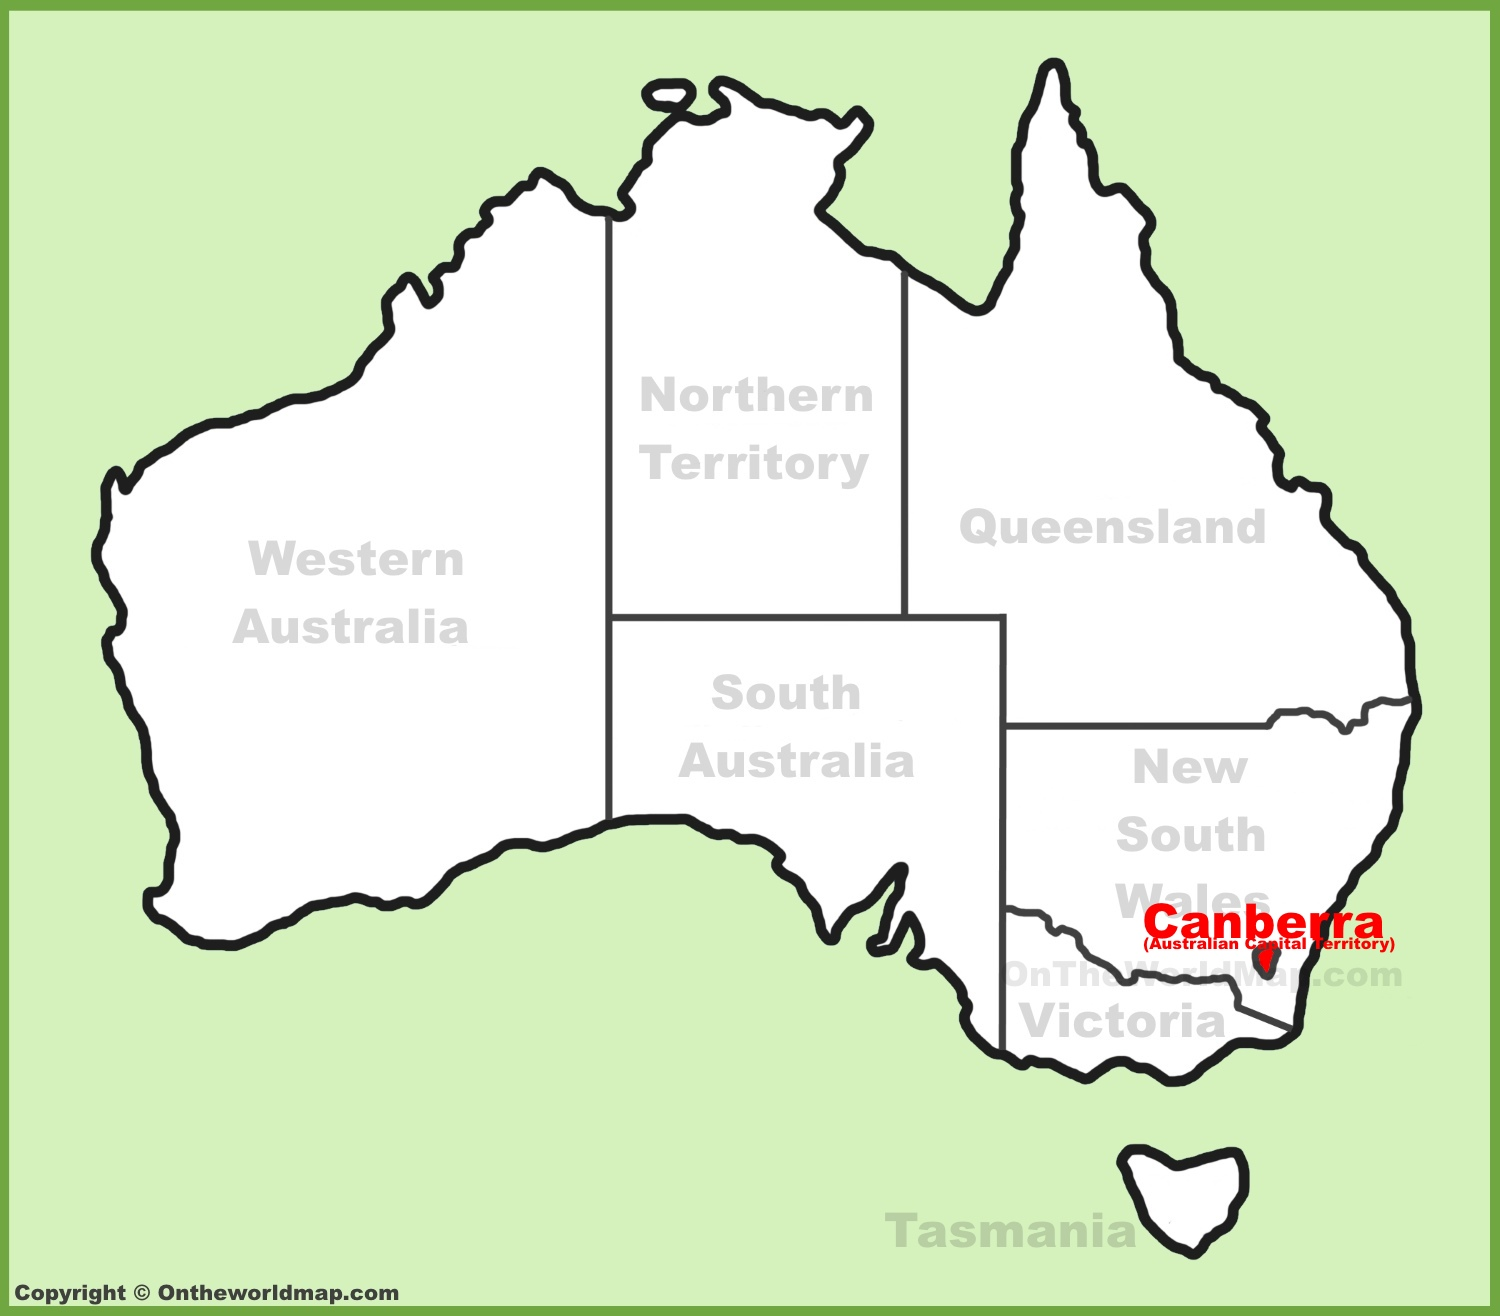 Canberra Australia Map Canberra Maps | Australia | Maps of Canberra (capital city of